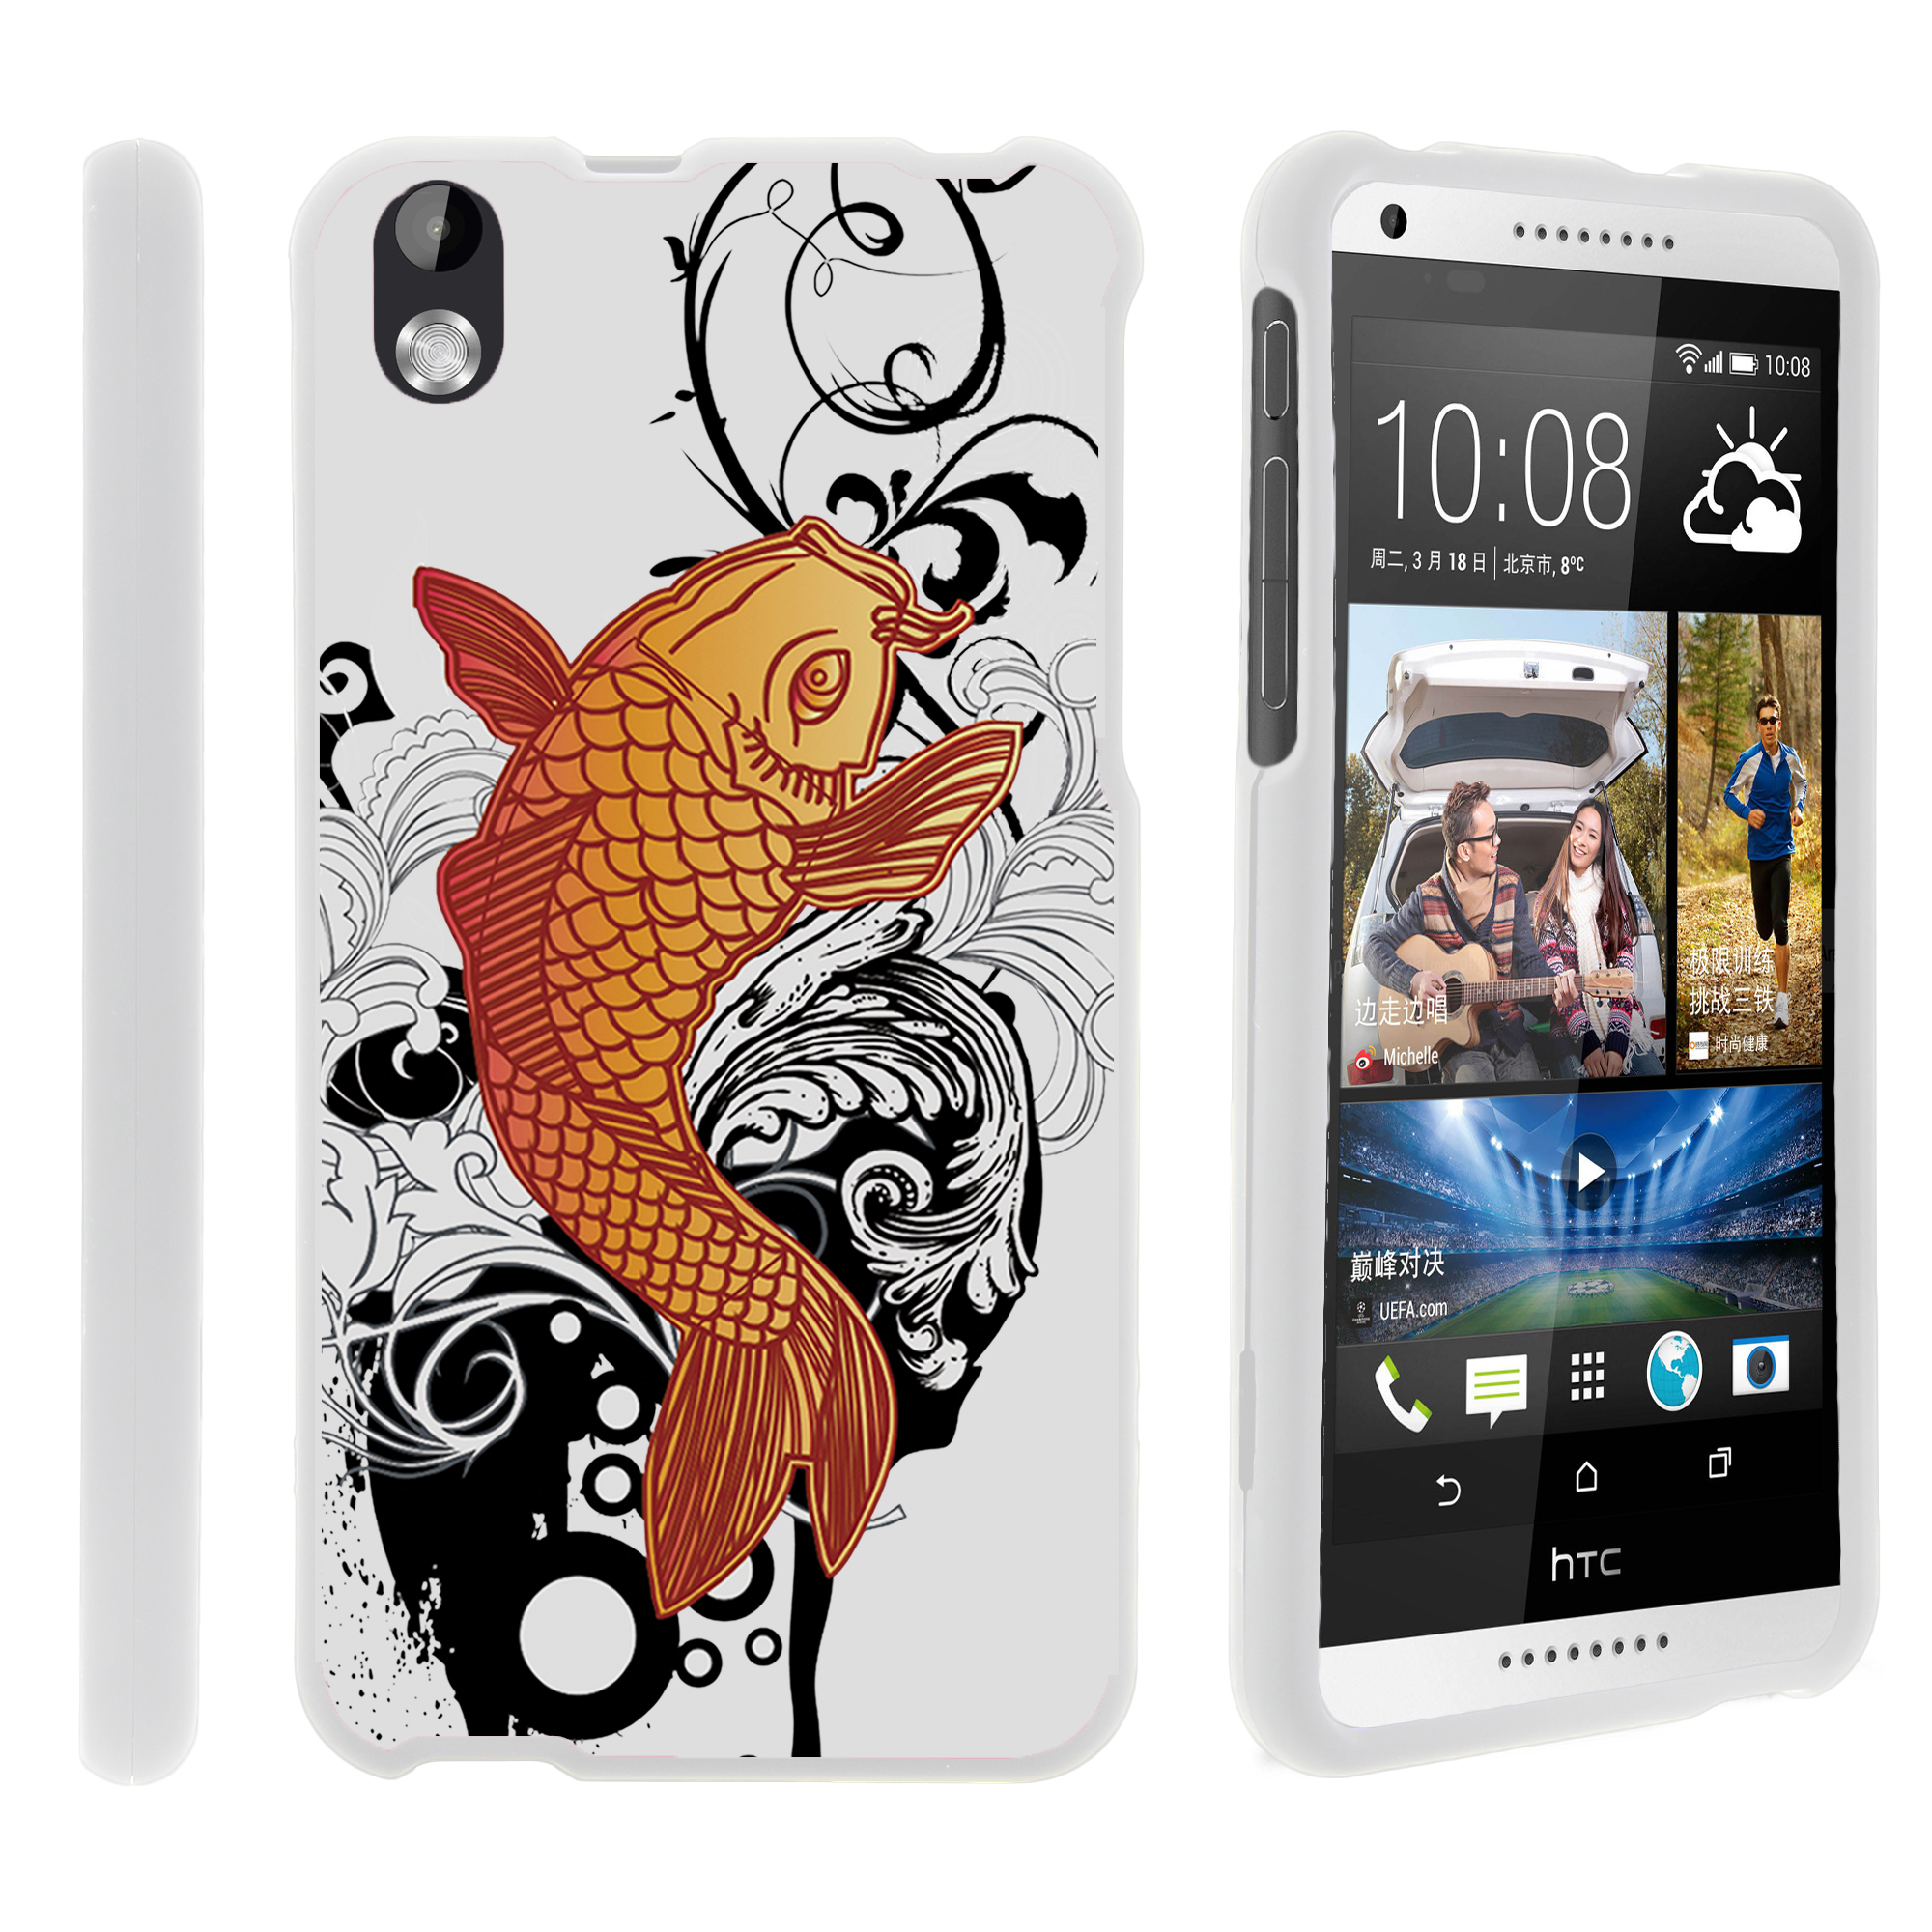 HTC Desire 816, [SNAP SHELL][White] 2 Piece Snap On Rubberized Hard White Plastic Cell Phone Case with Exclusive Art -  Koi Fish